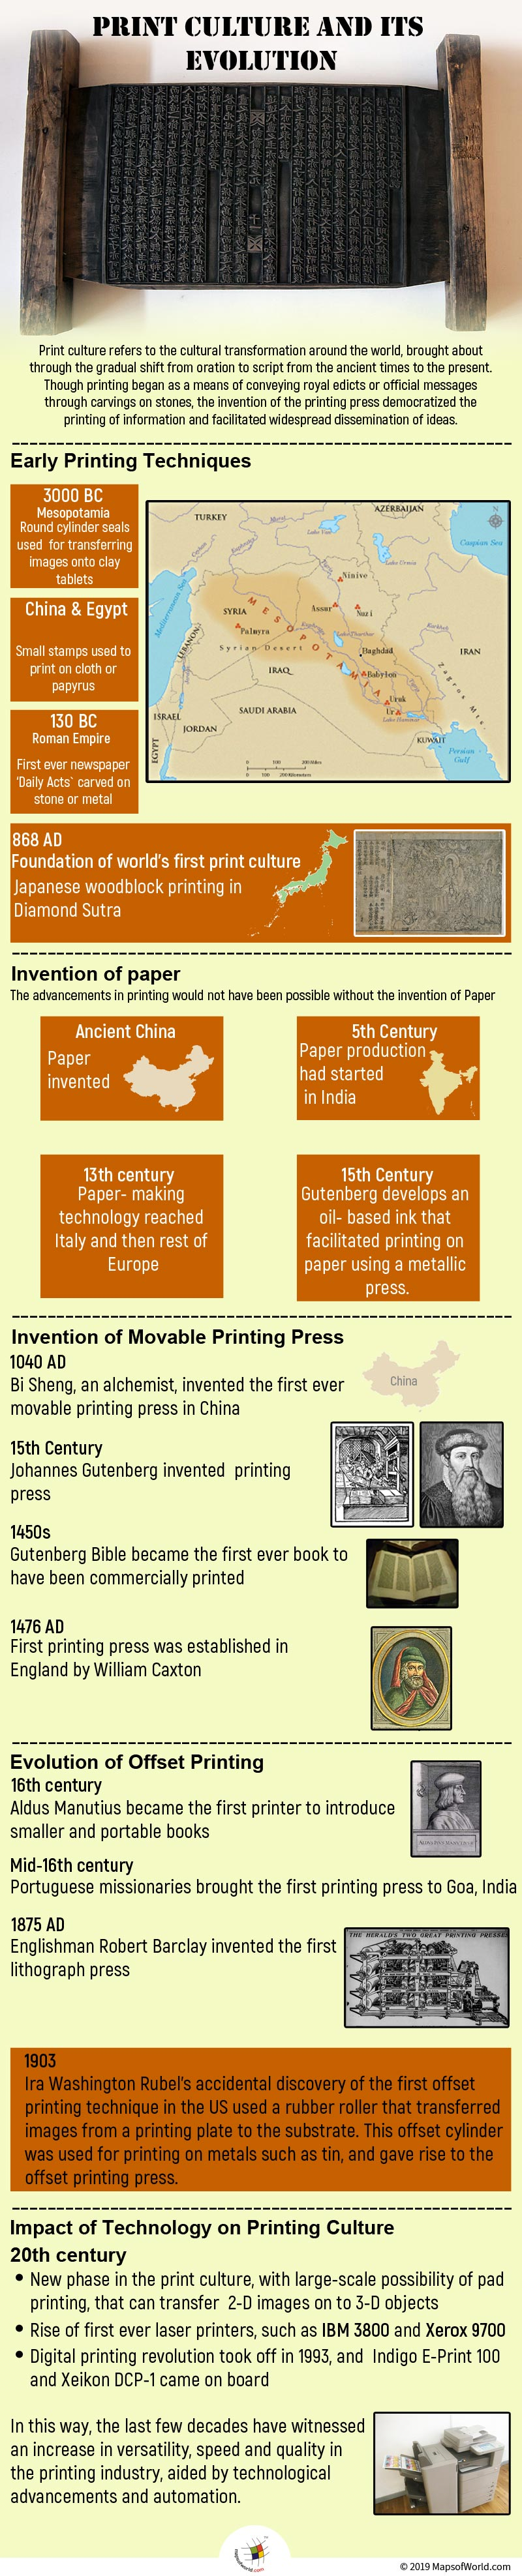 Infographic Showing Evolution of The Print Culture